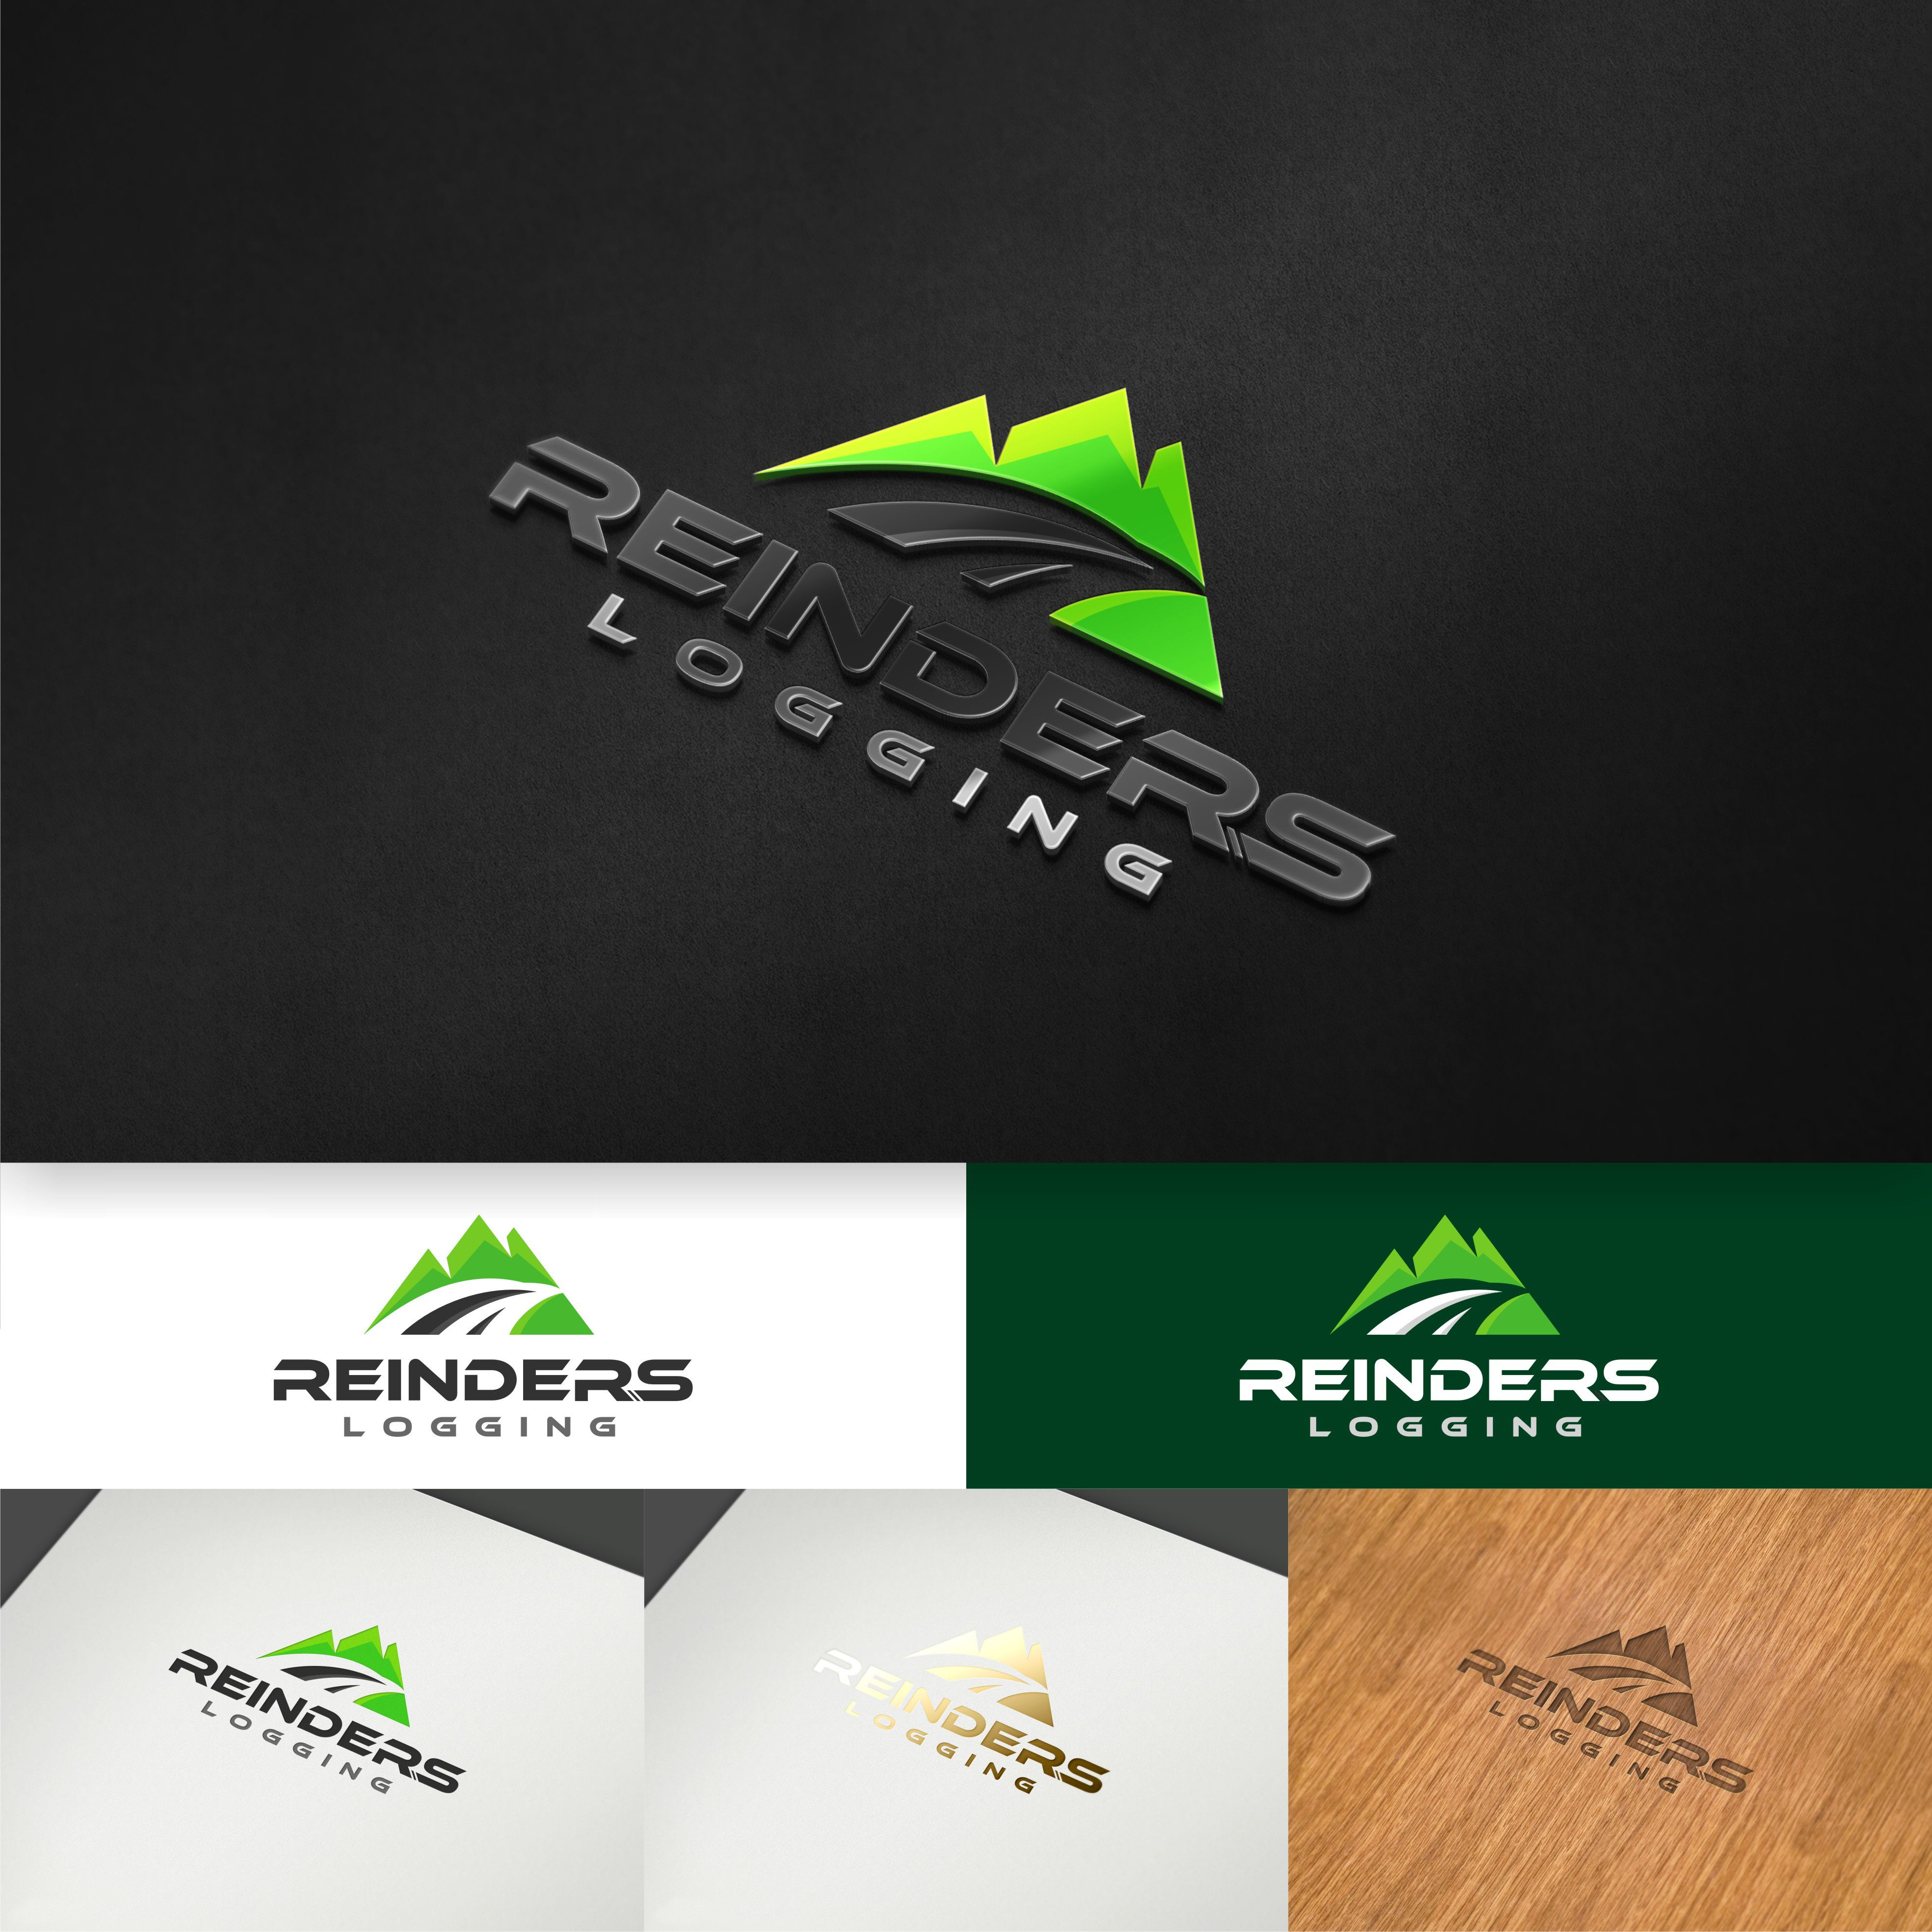 Attractive logo designed for a recently purchased logging business.